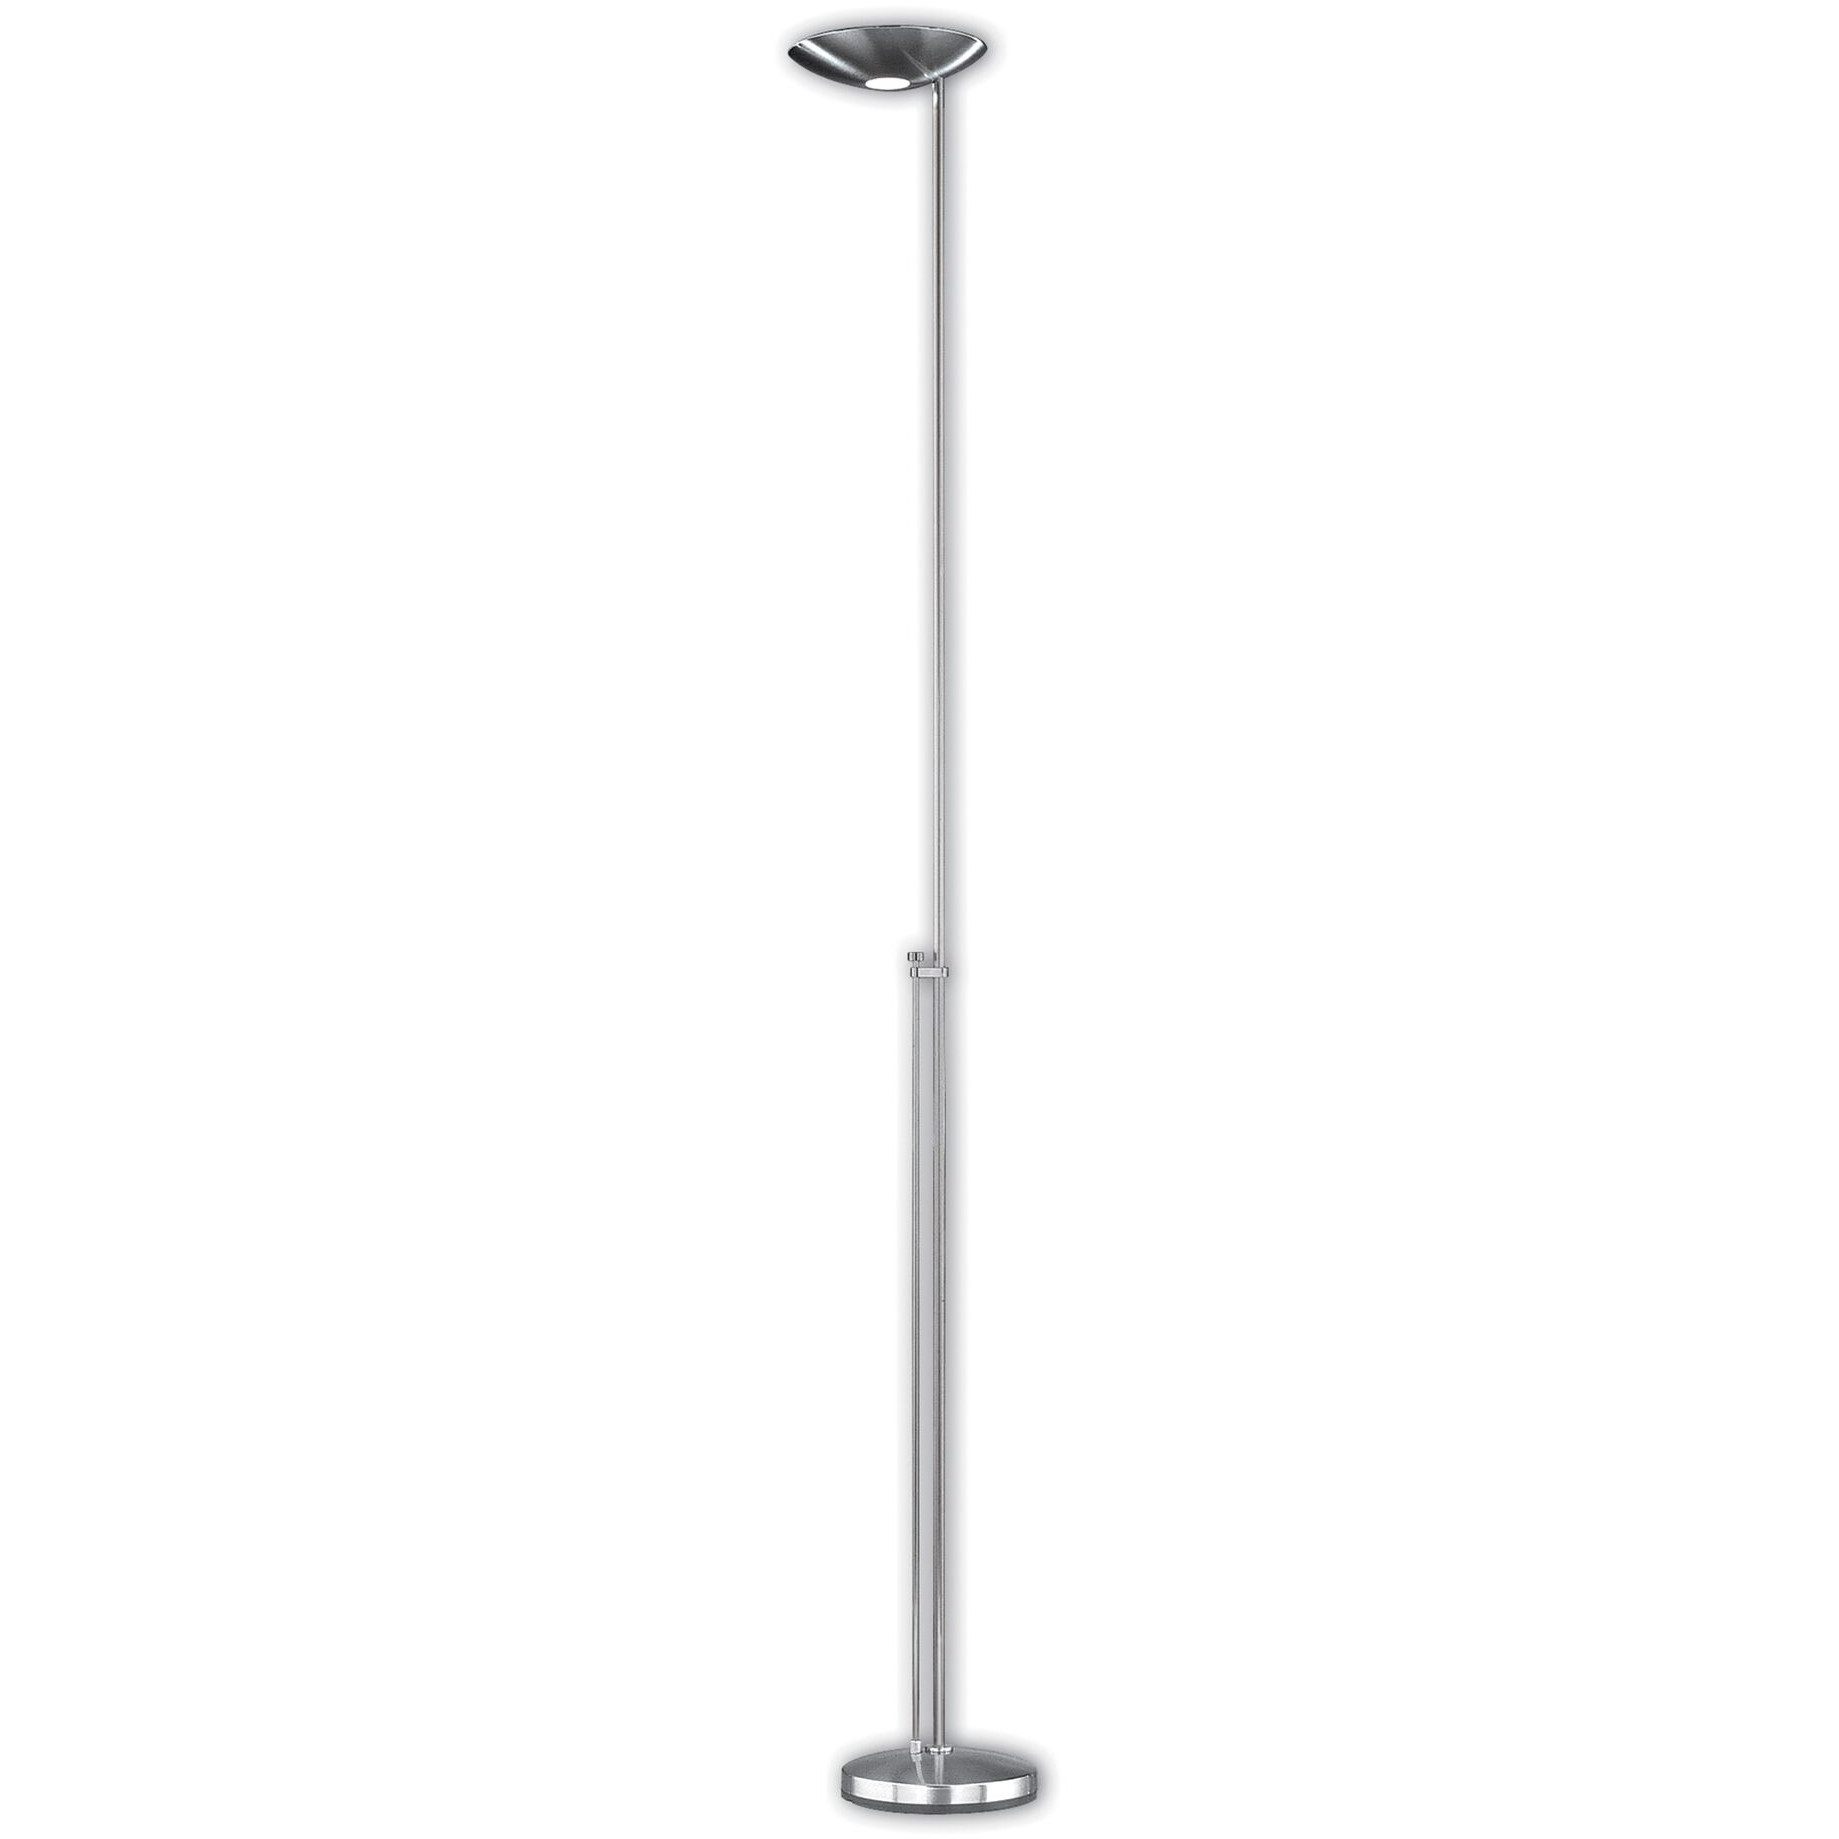 1129 torchiere floor lamp by estiluz p 1129 37 p 1129 torchiere floor lamp by estiluz p 1129 37 mozeypictures Image collections